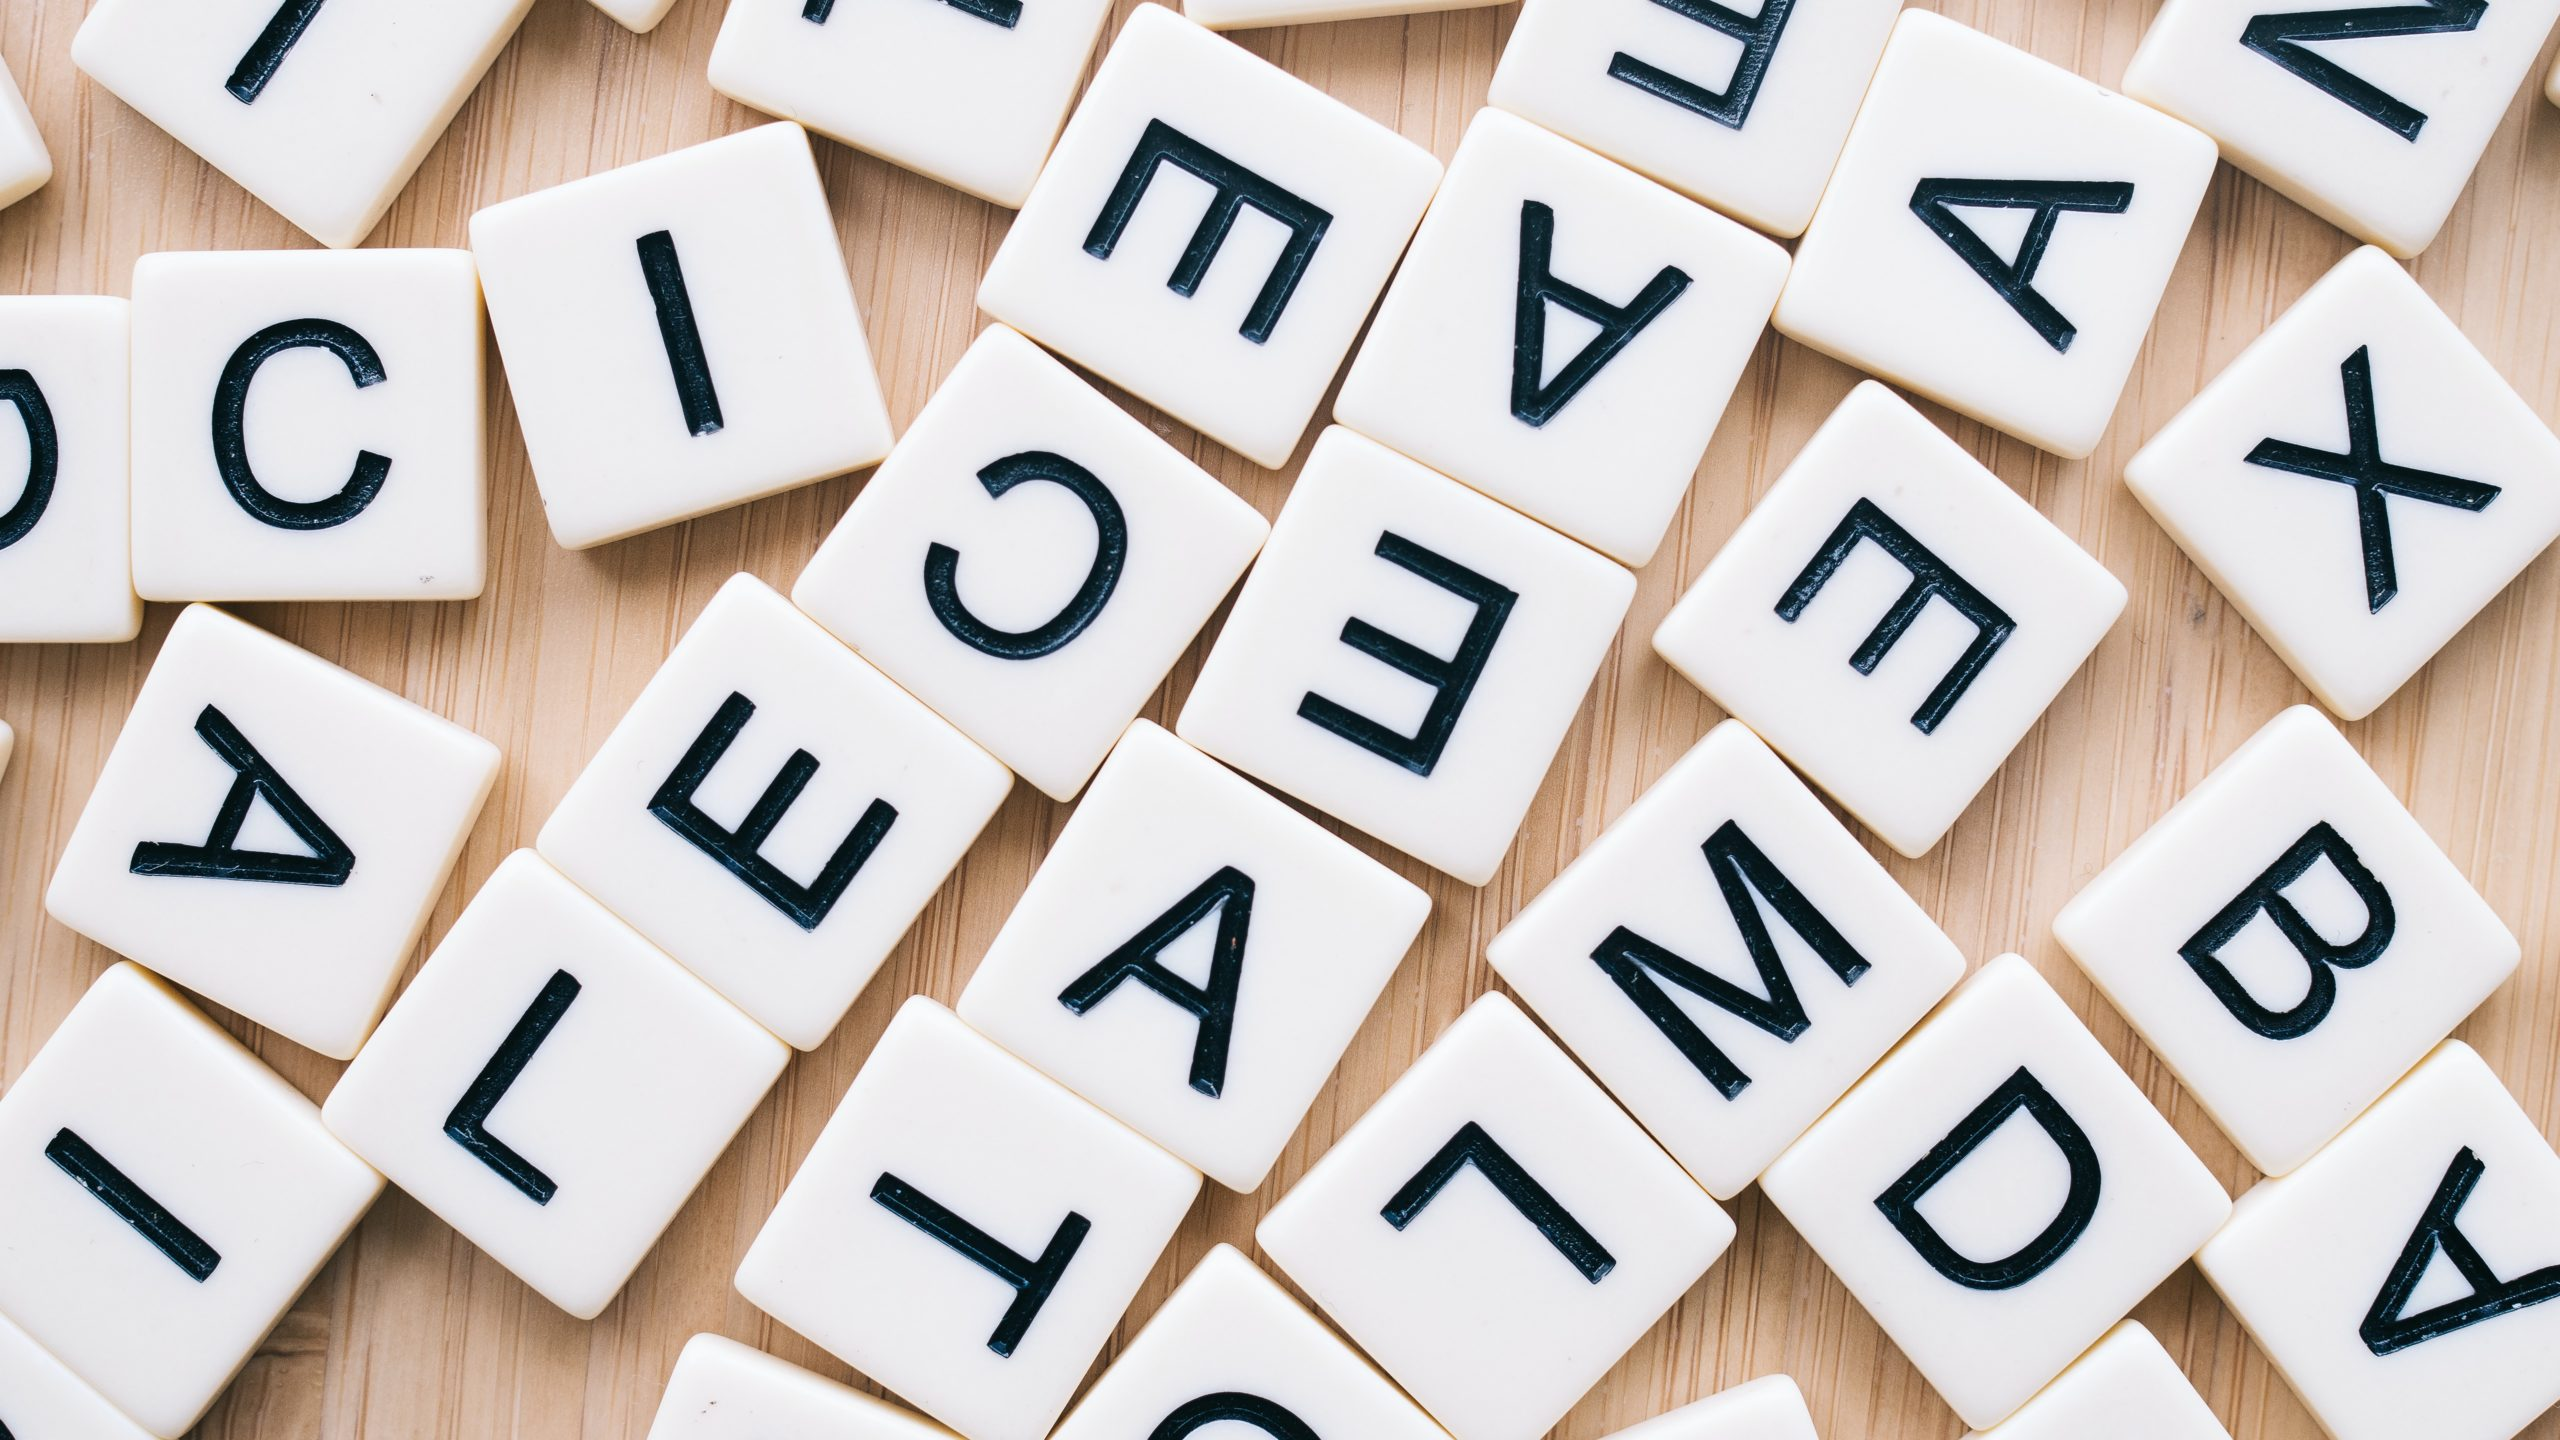 Scattered letters to indicate a need for copy-editing